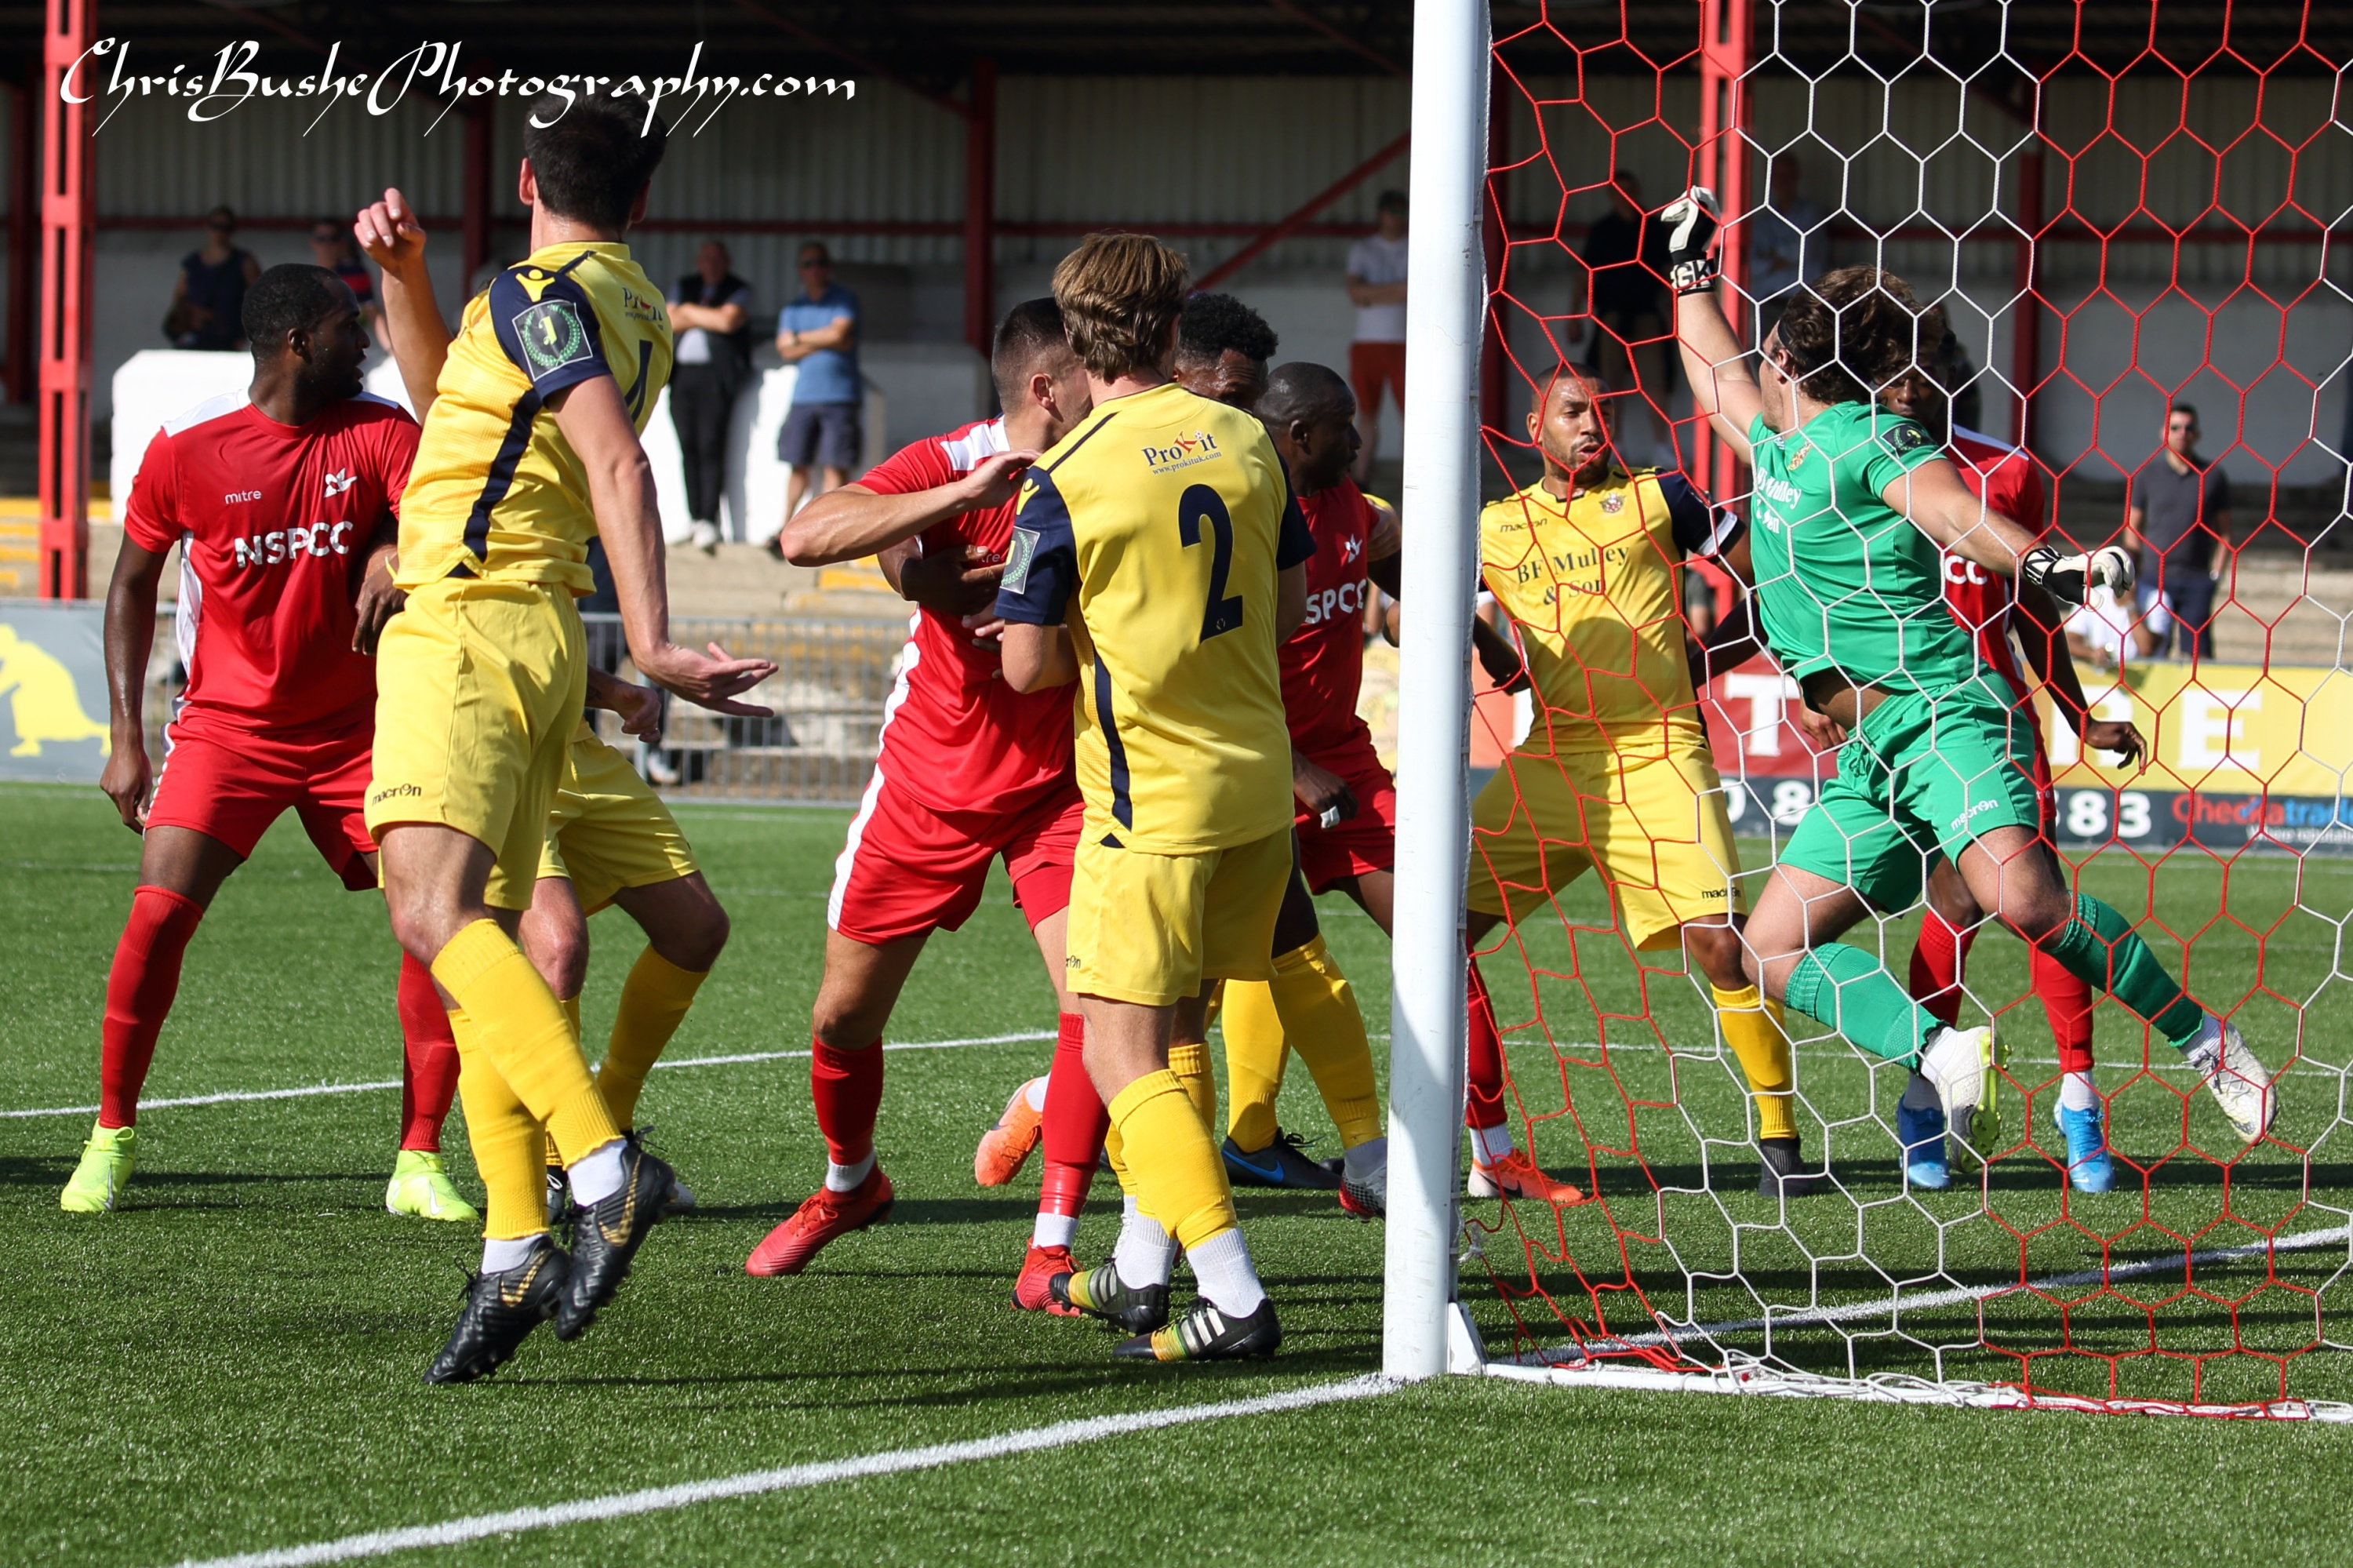 Amoo scoring Carshalton goal. second image